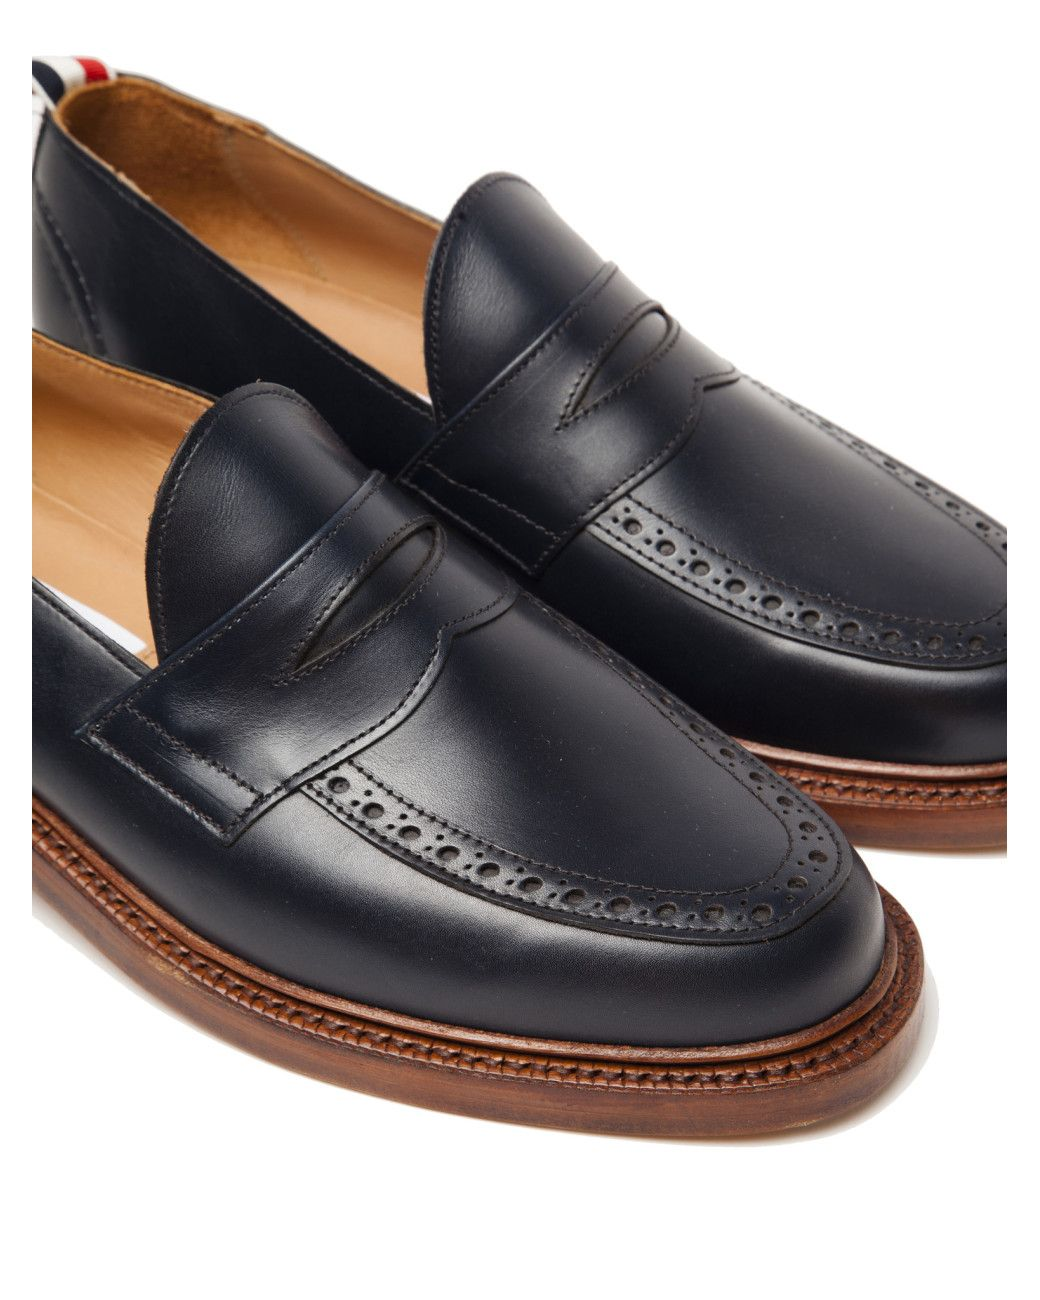 c4c8720667a Thom Browne Men s Penny Loafer With Leather Sole (calf Leather)  1340